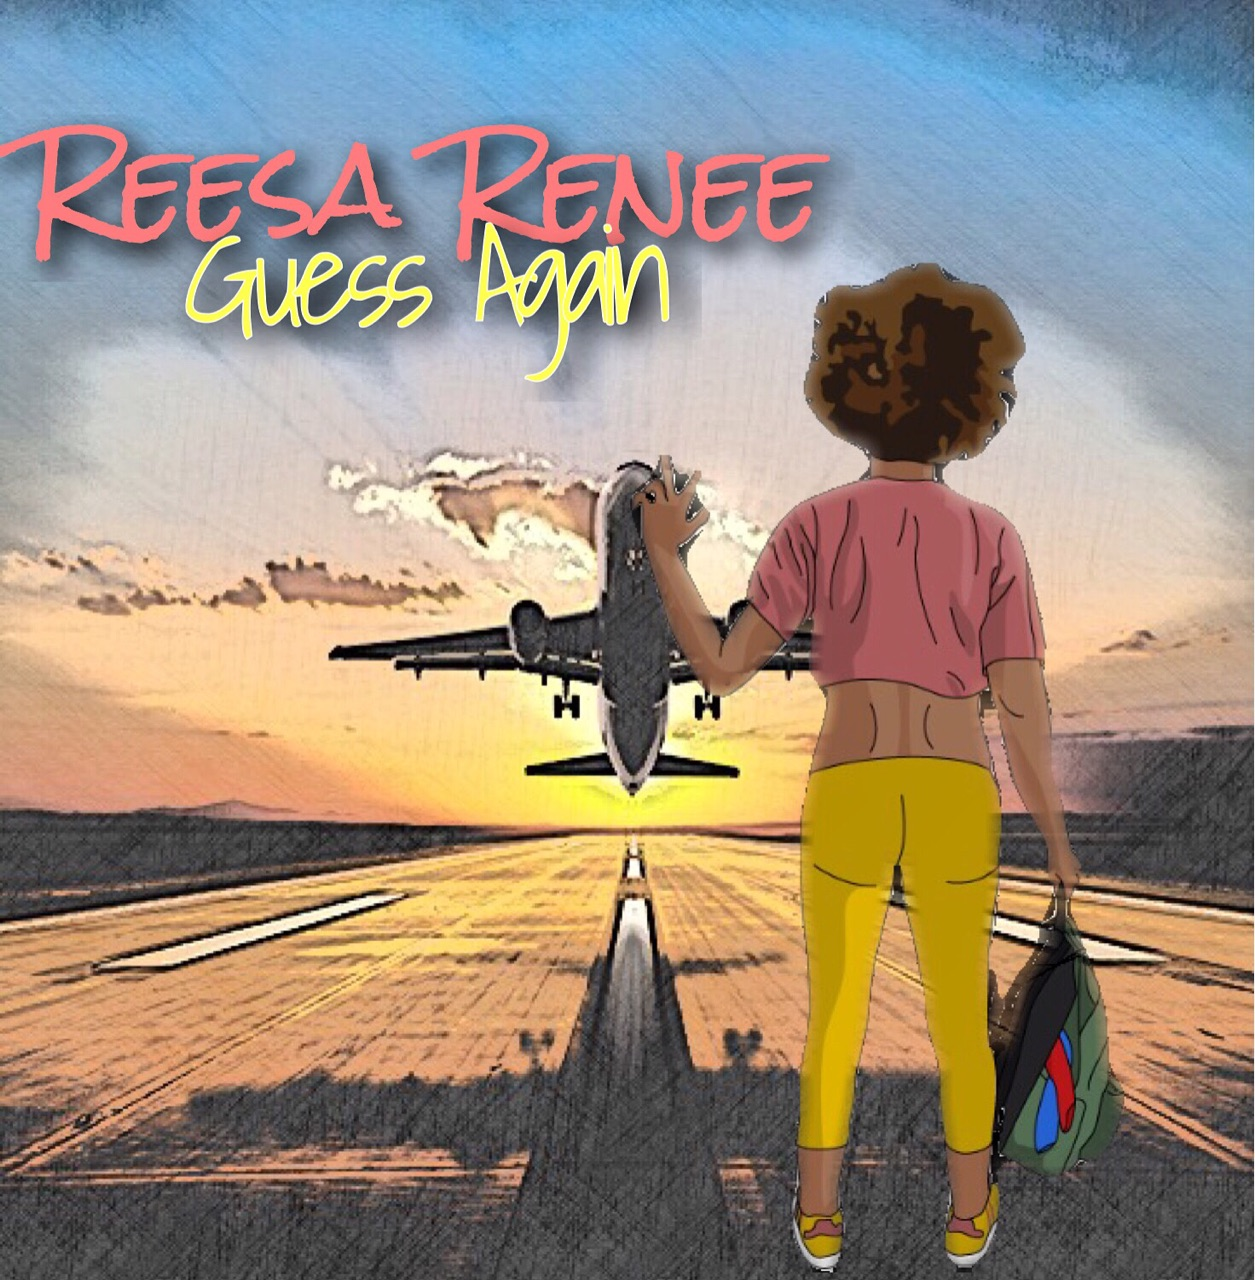 Reesa Renee Guess Again